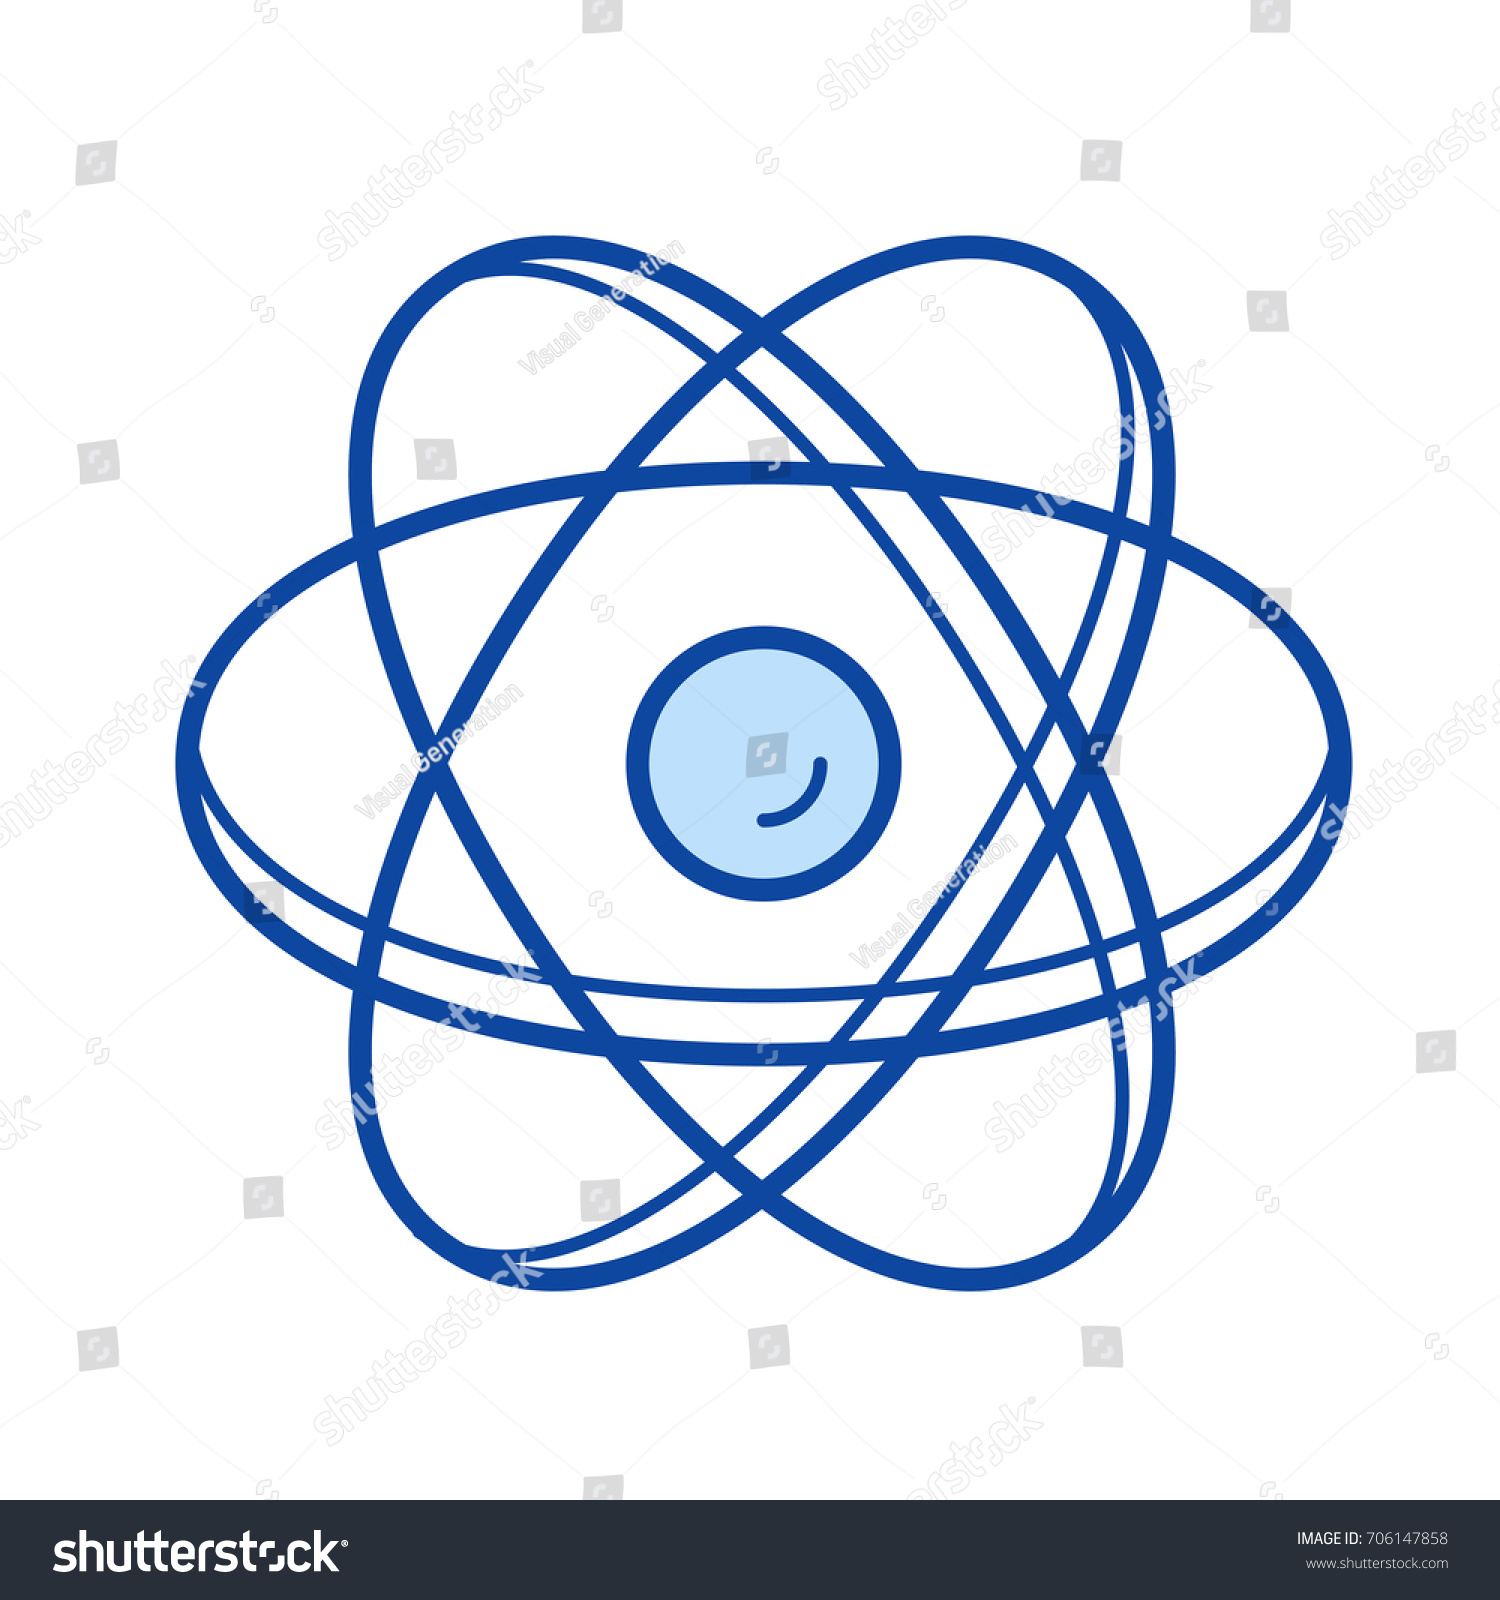 Atom structure vector line icon isolated stock vector 706147858 atom structure vector line icon isolated stock vector 706147858 shutterstock ccuart Gallery